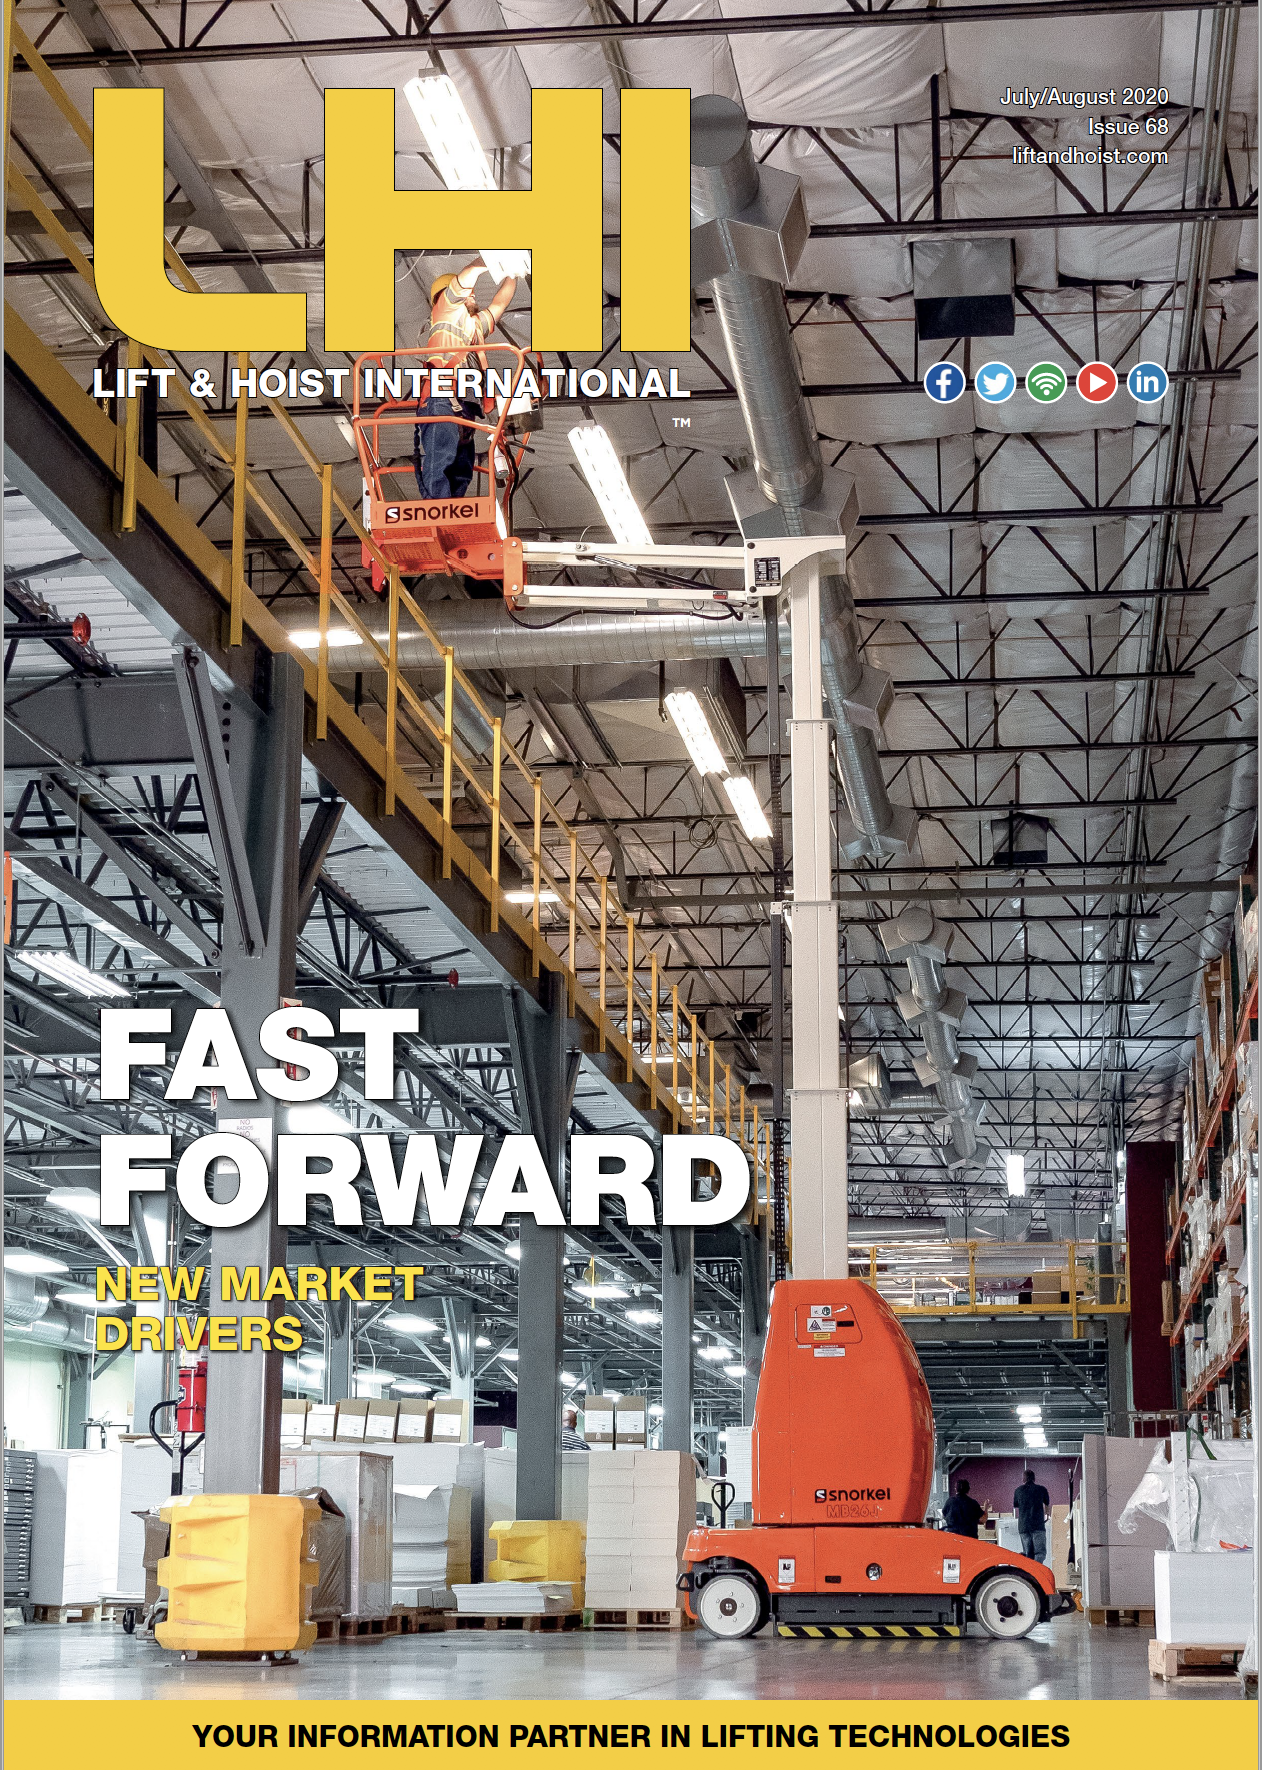 Lift and Hoist International is a trade magazine for overhead cranes and hoists